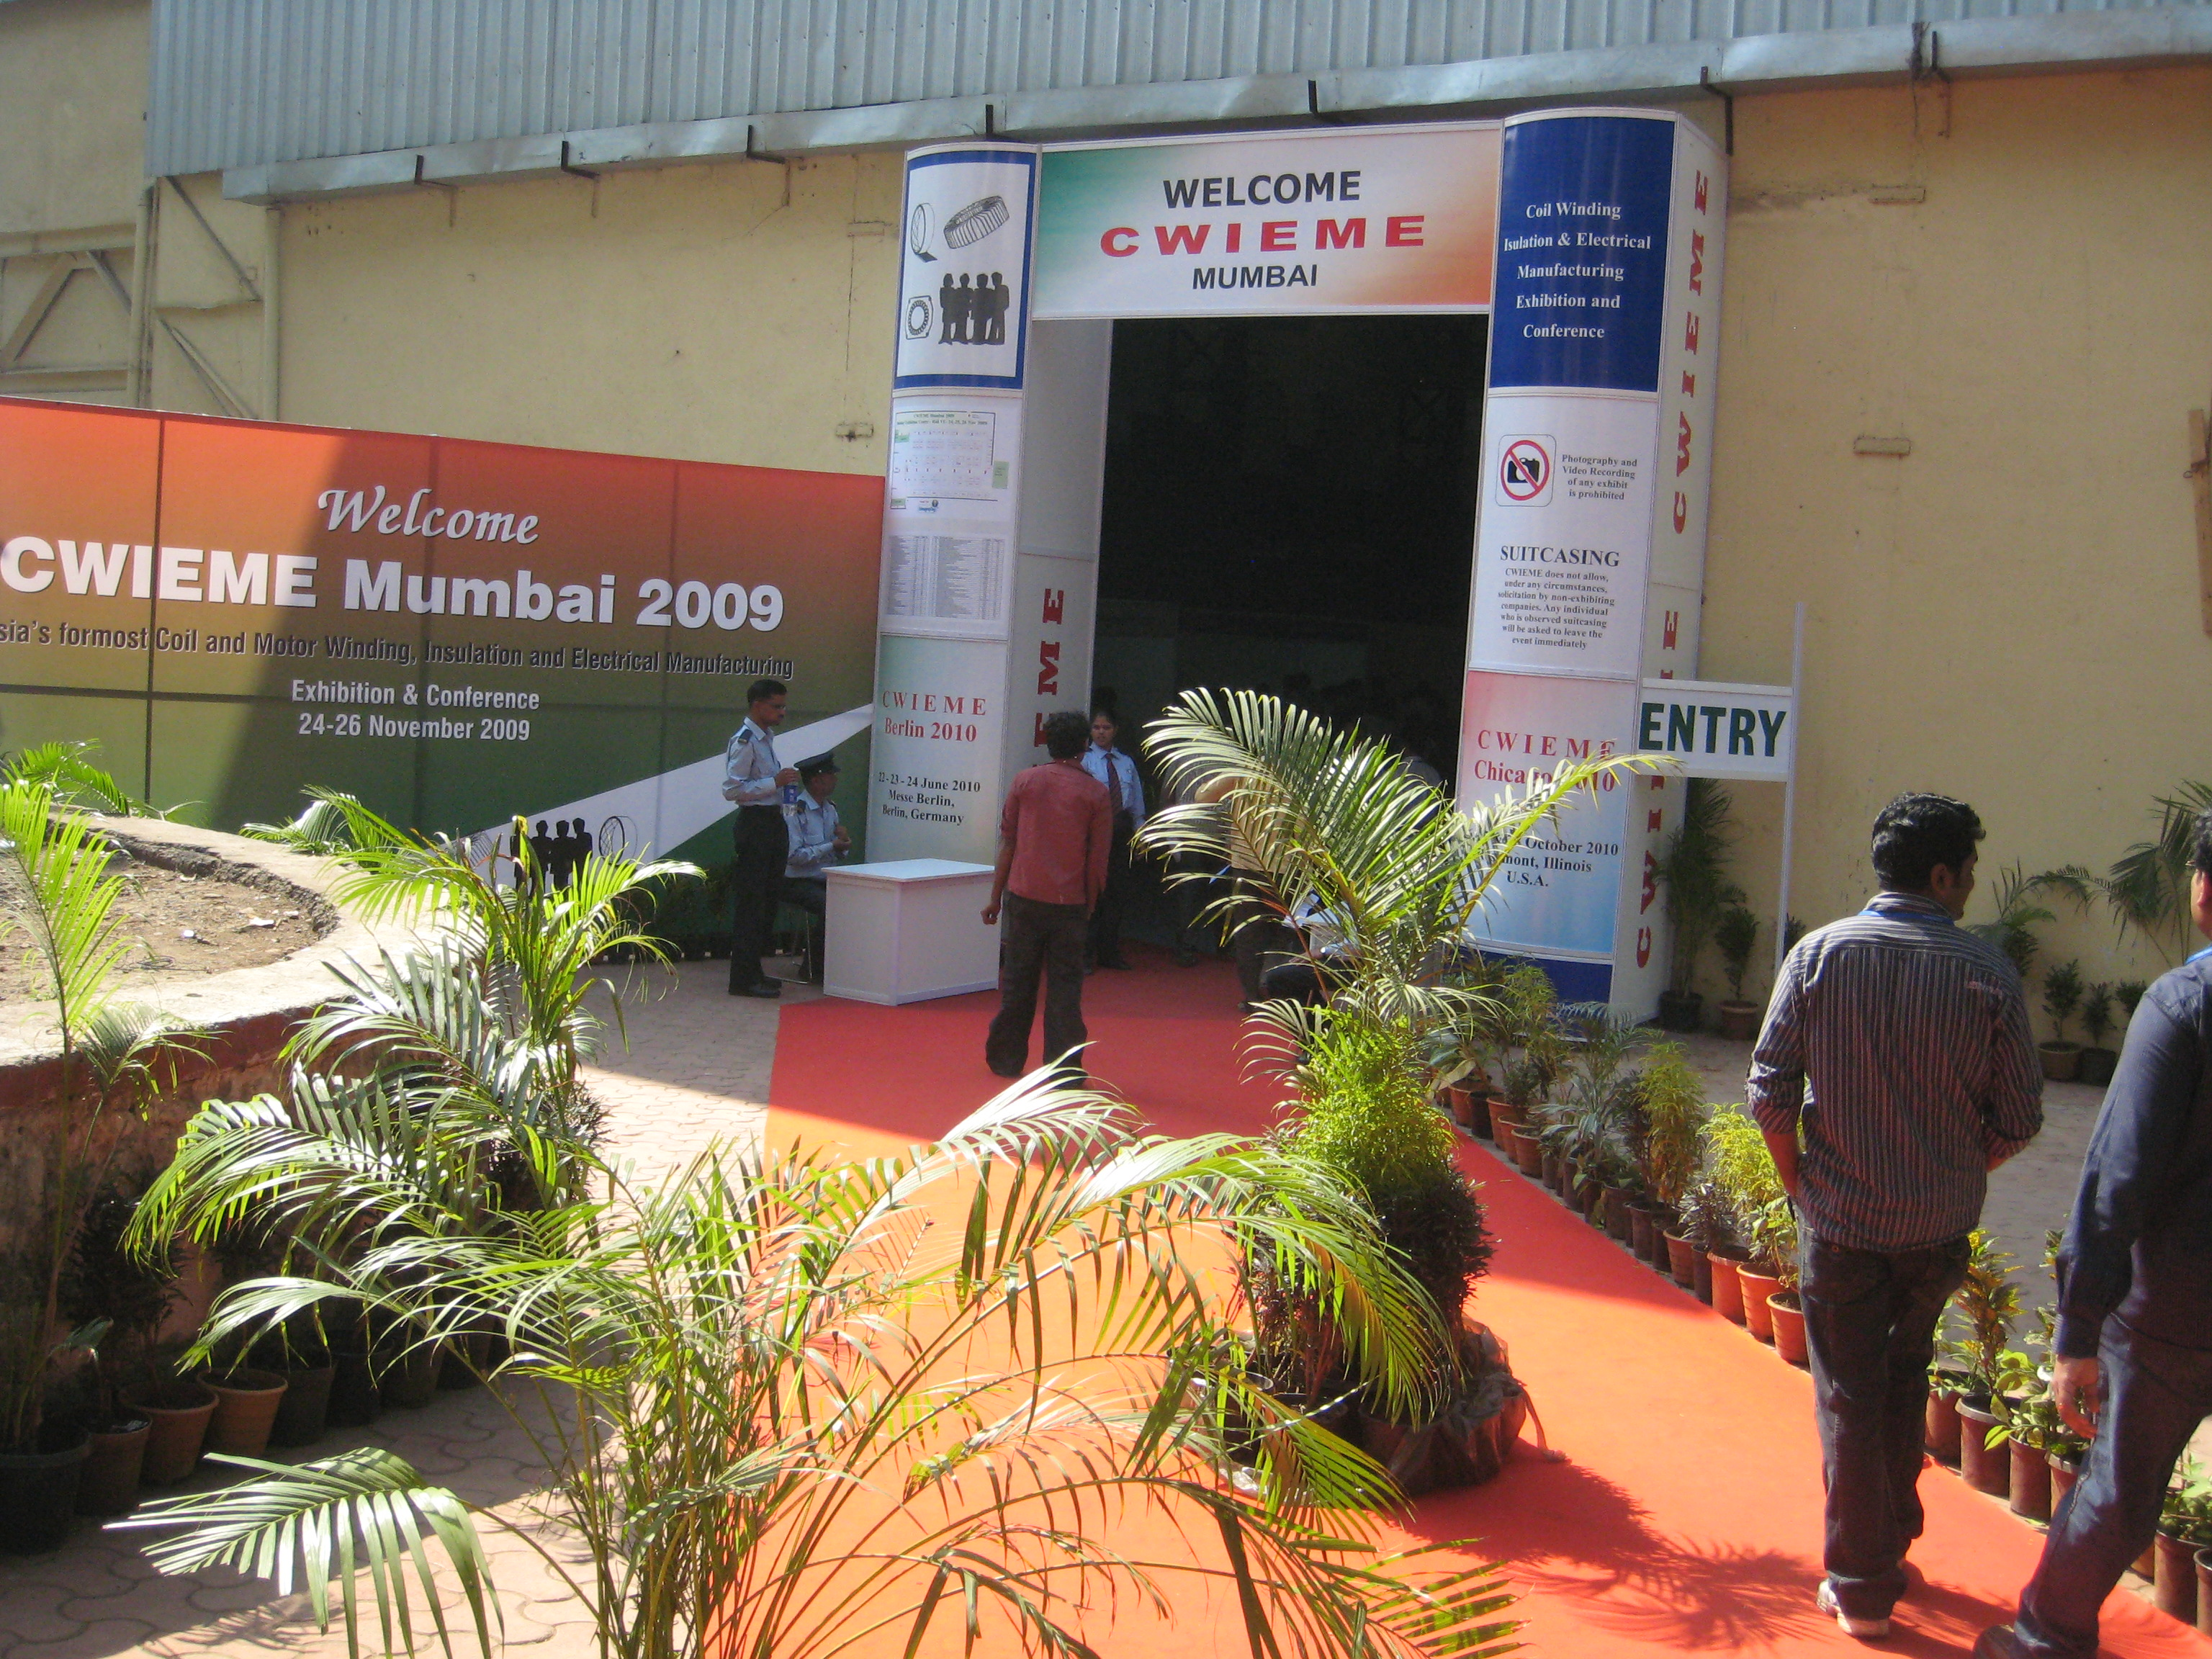 Index Of Mumbai 2009 Powertronix Inductor Cwieme Front Entrance 13